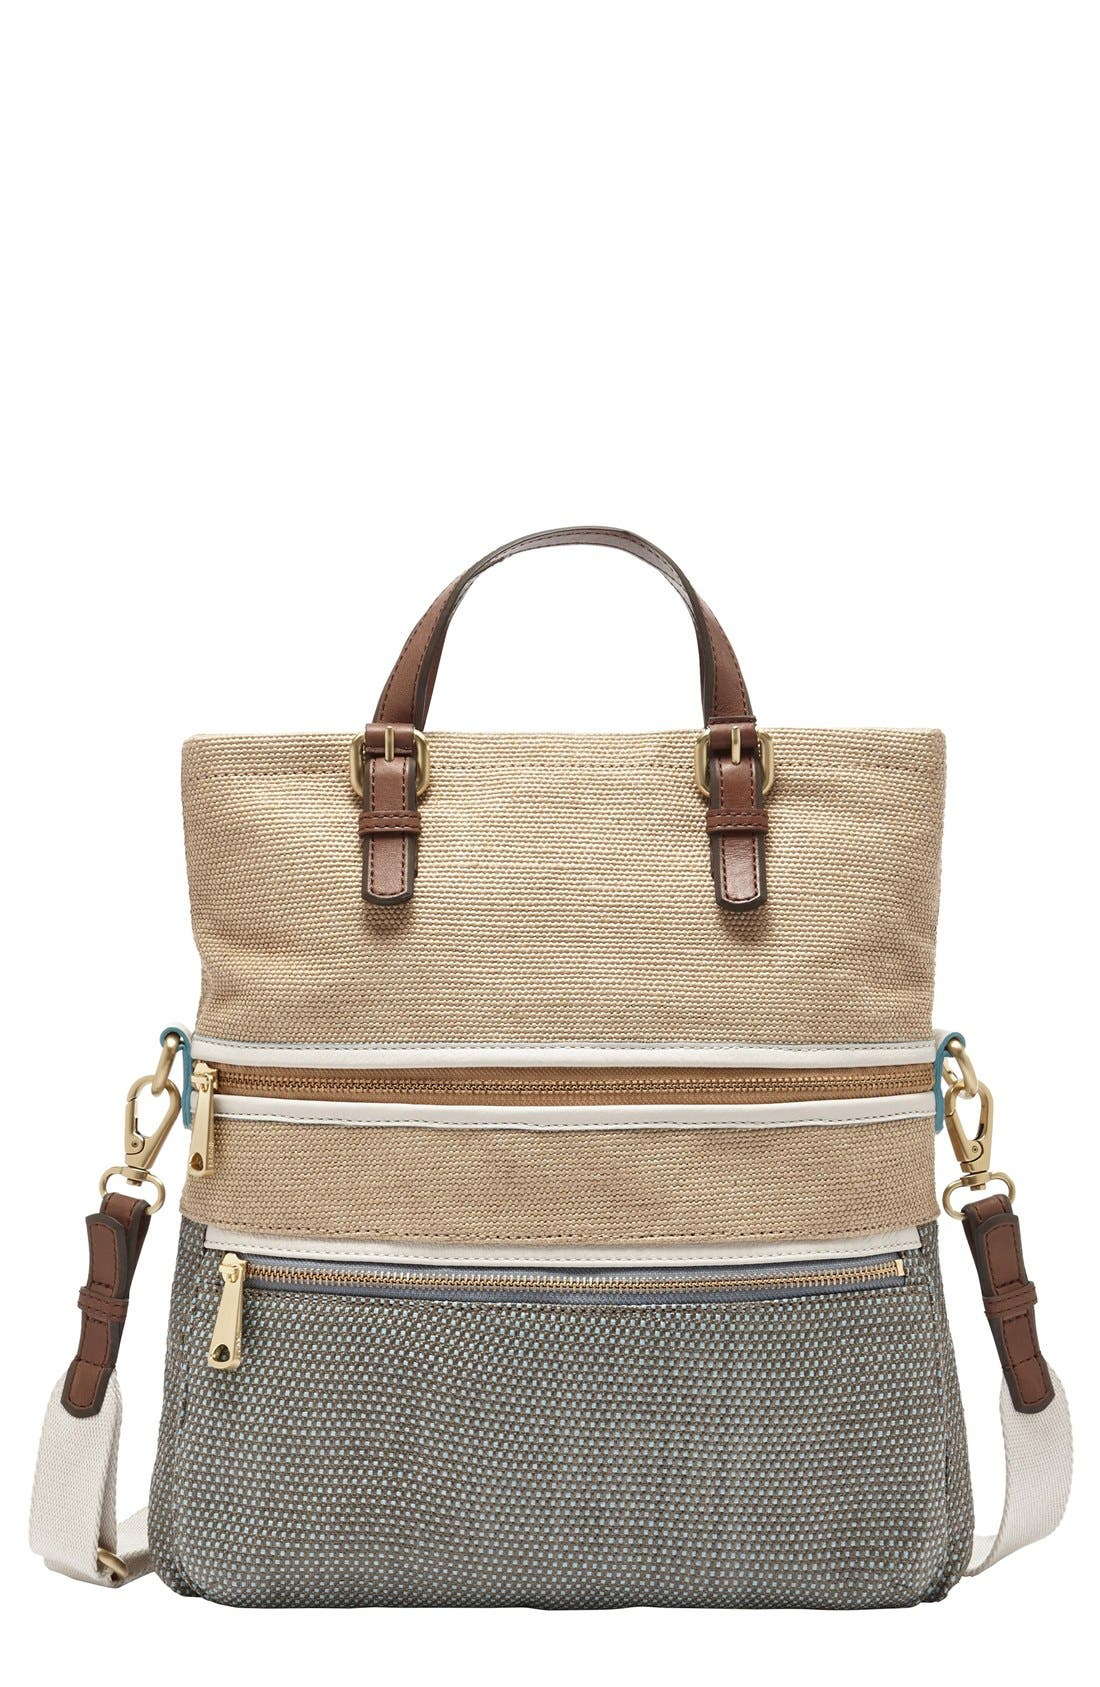 Main Image - Fossil 'Explorer' Straw Tote